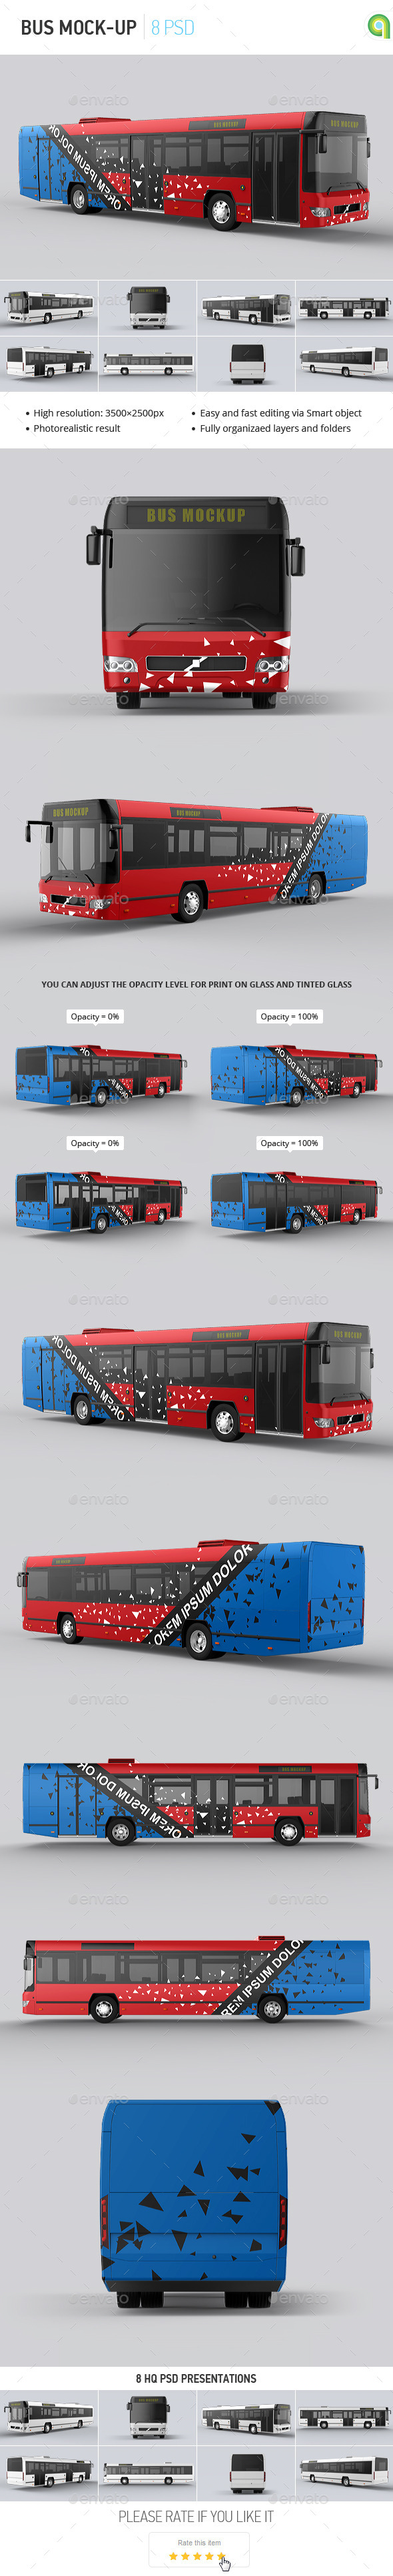 Bus Mock-up